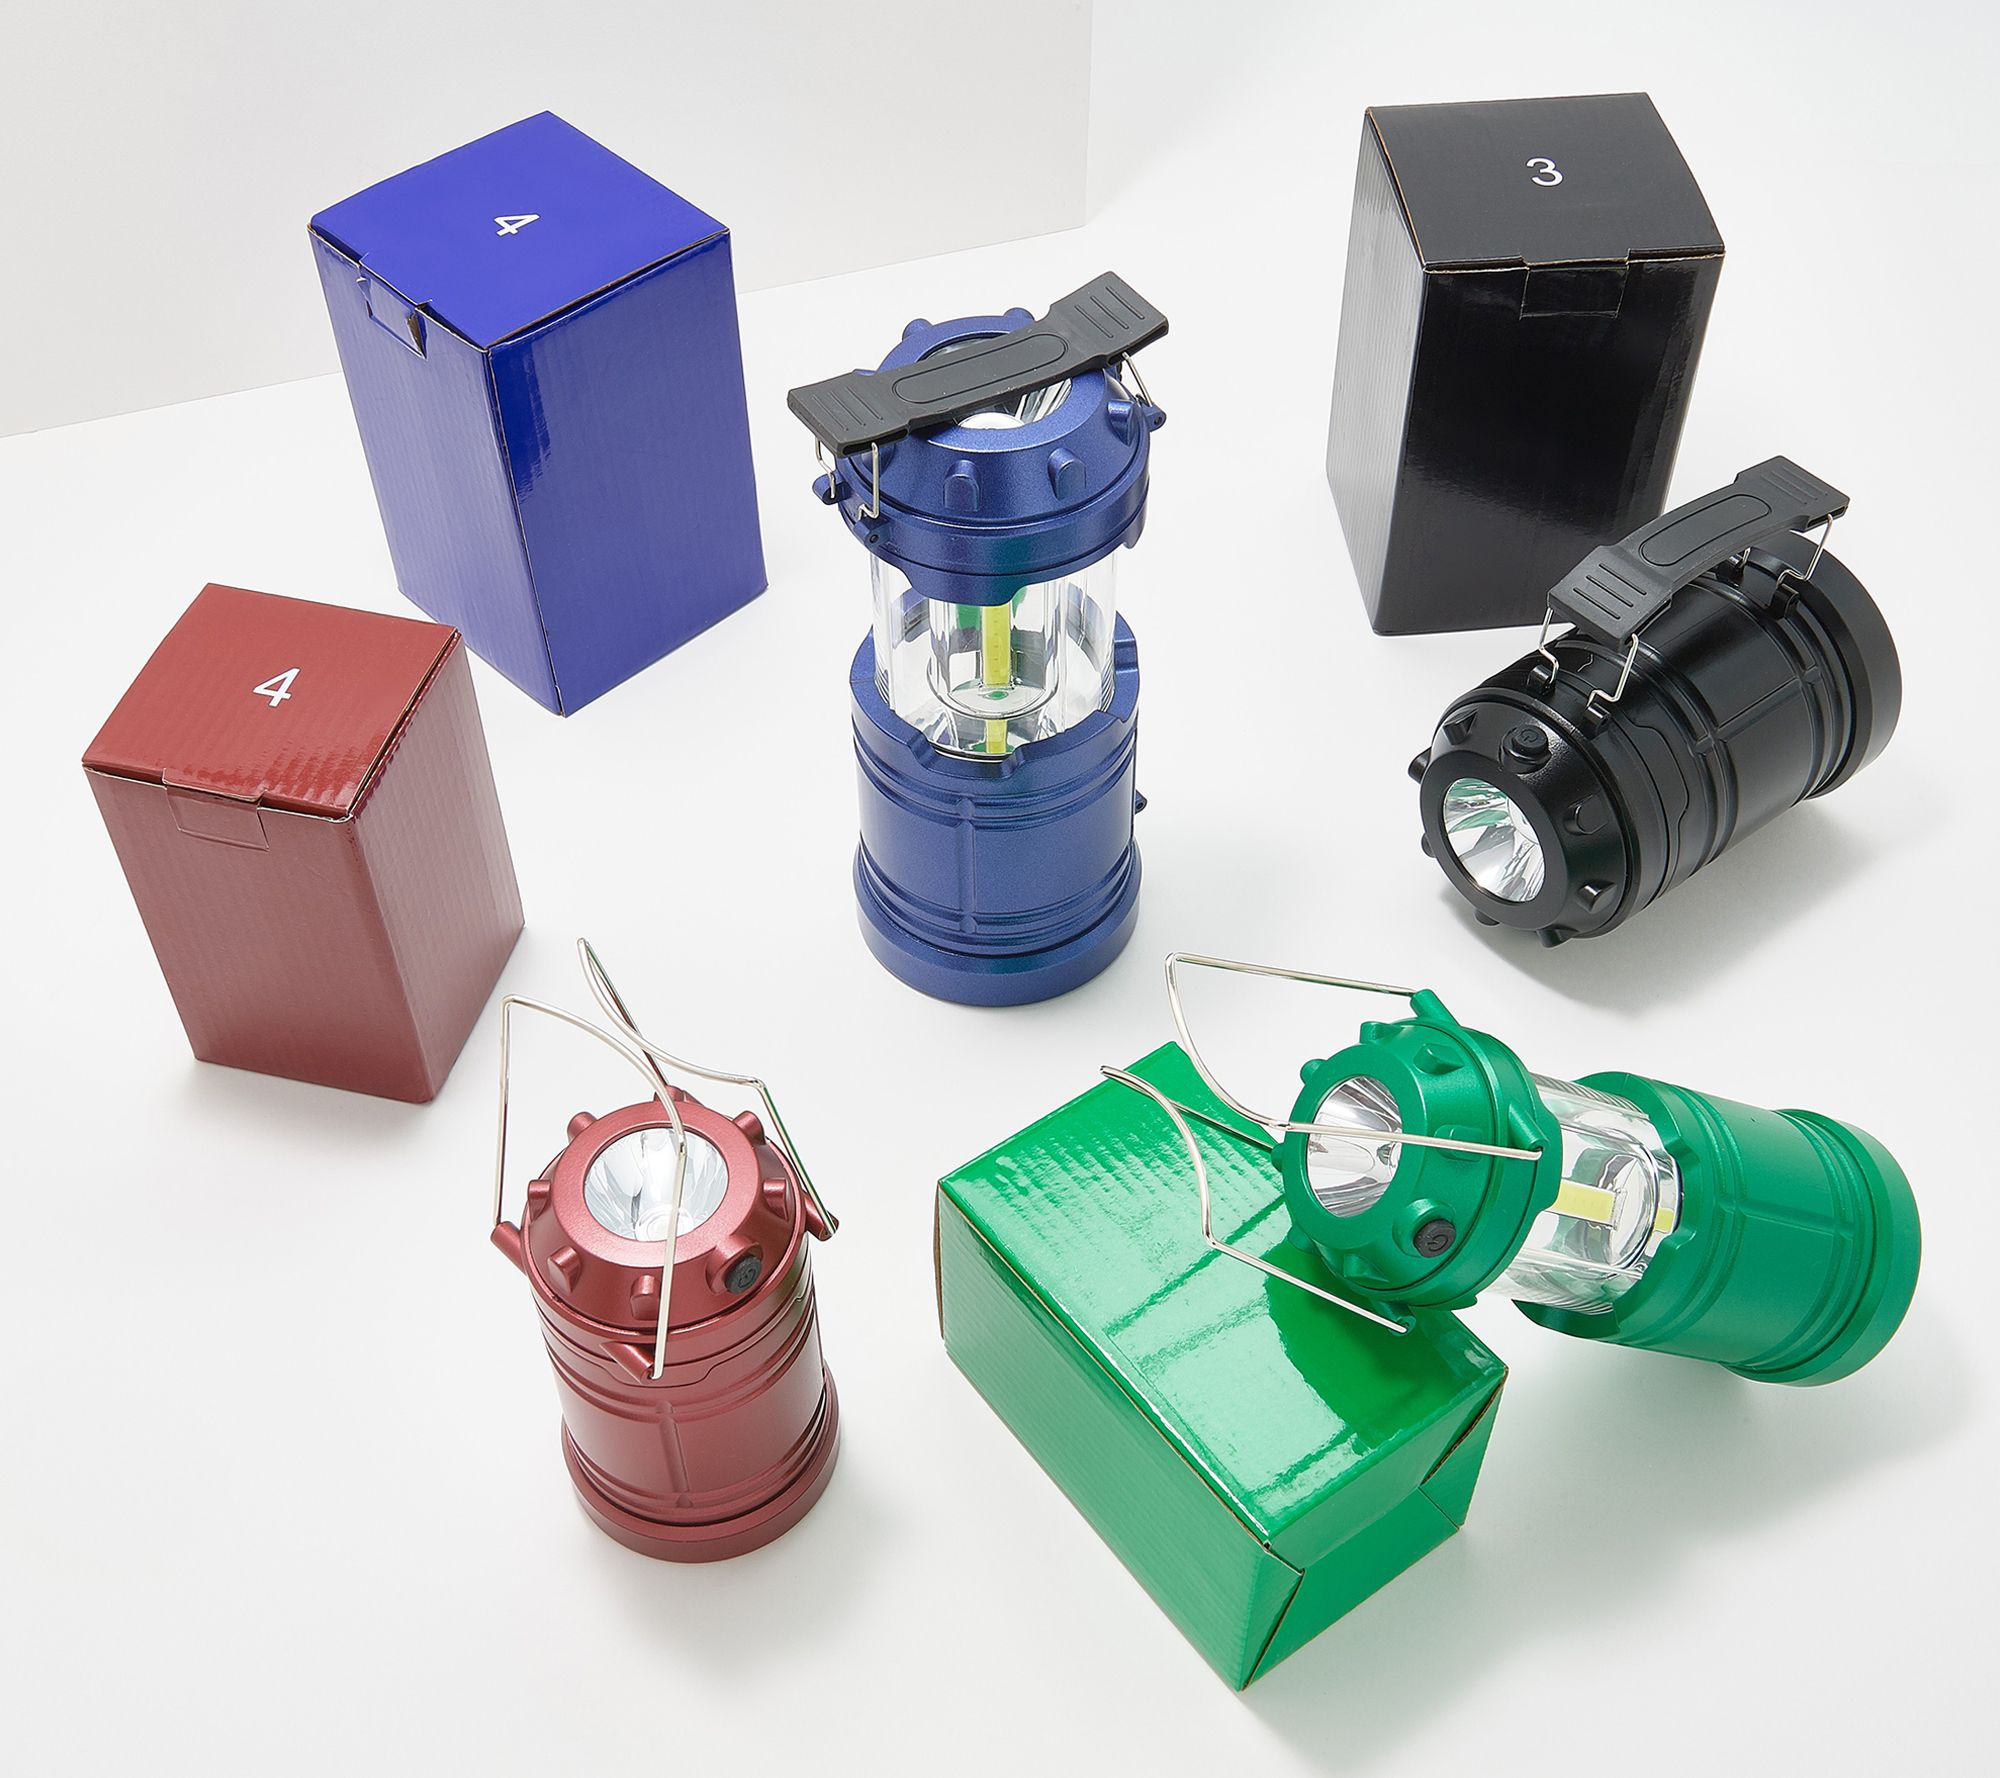 17% off a set of 2 large and 2 mini lanterns